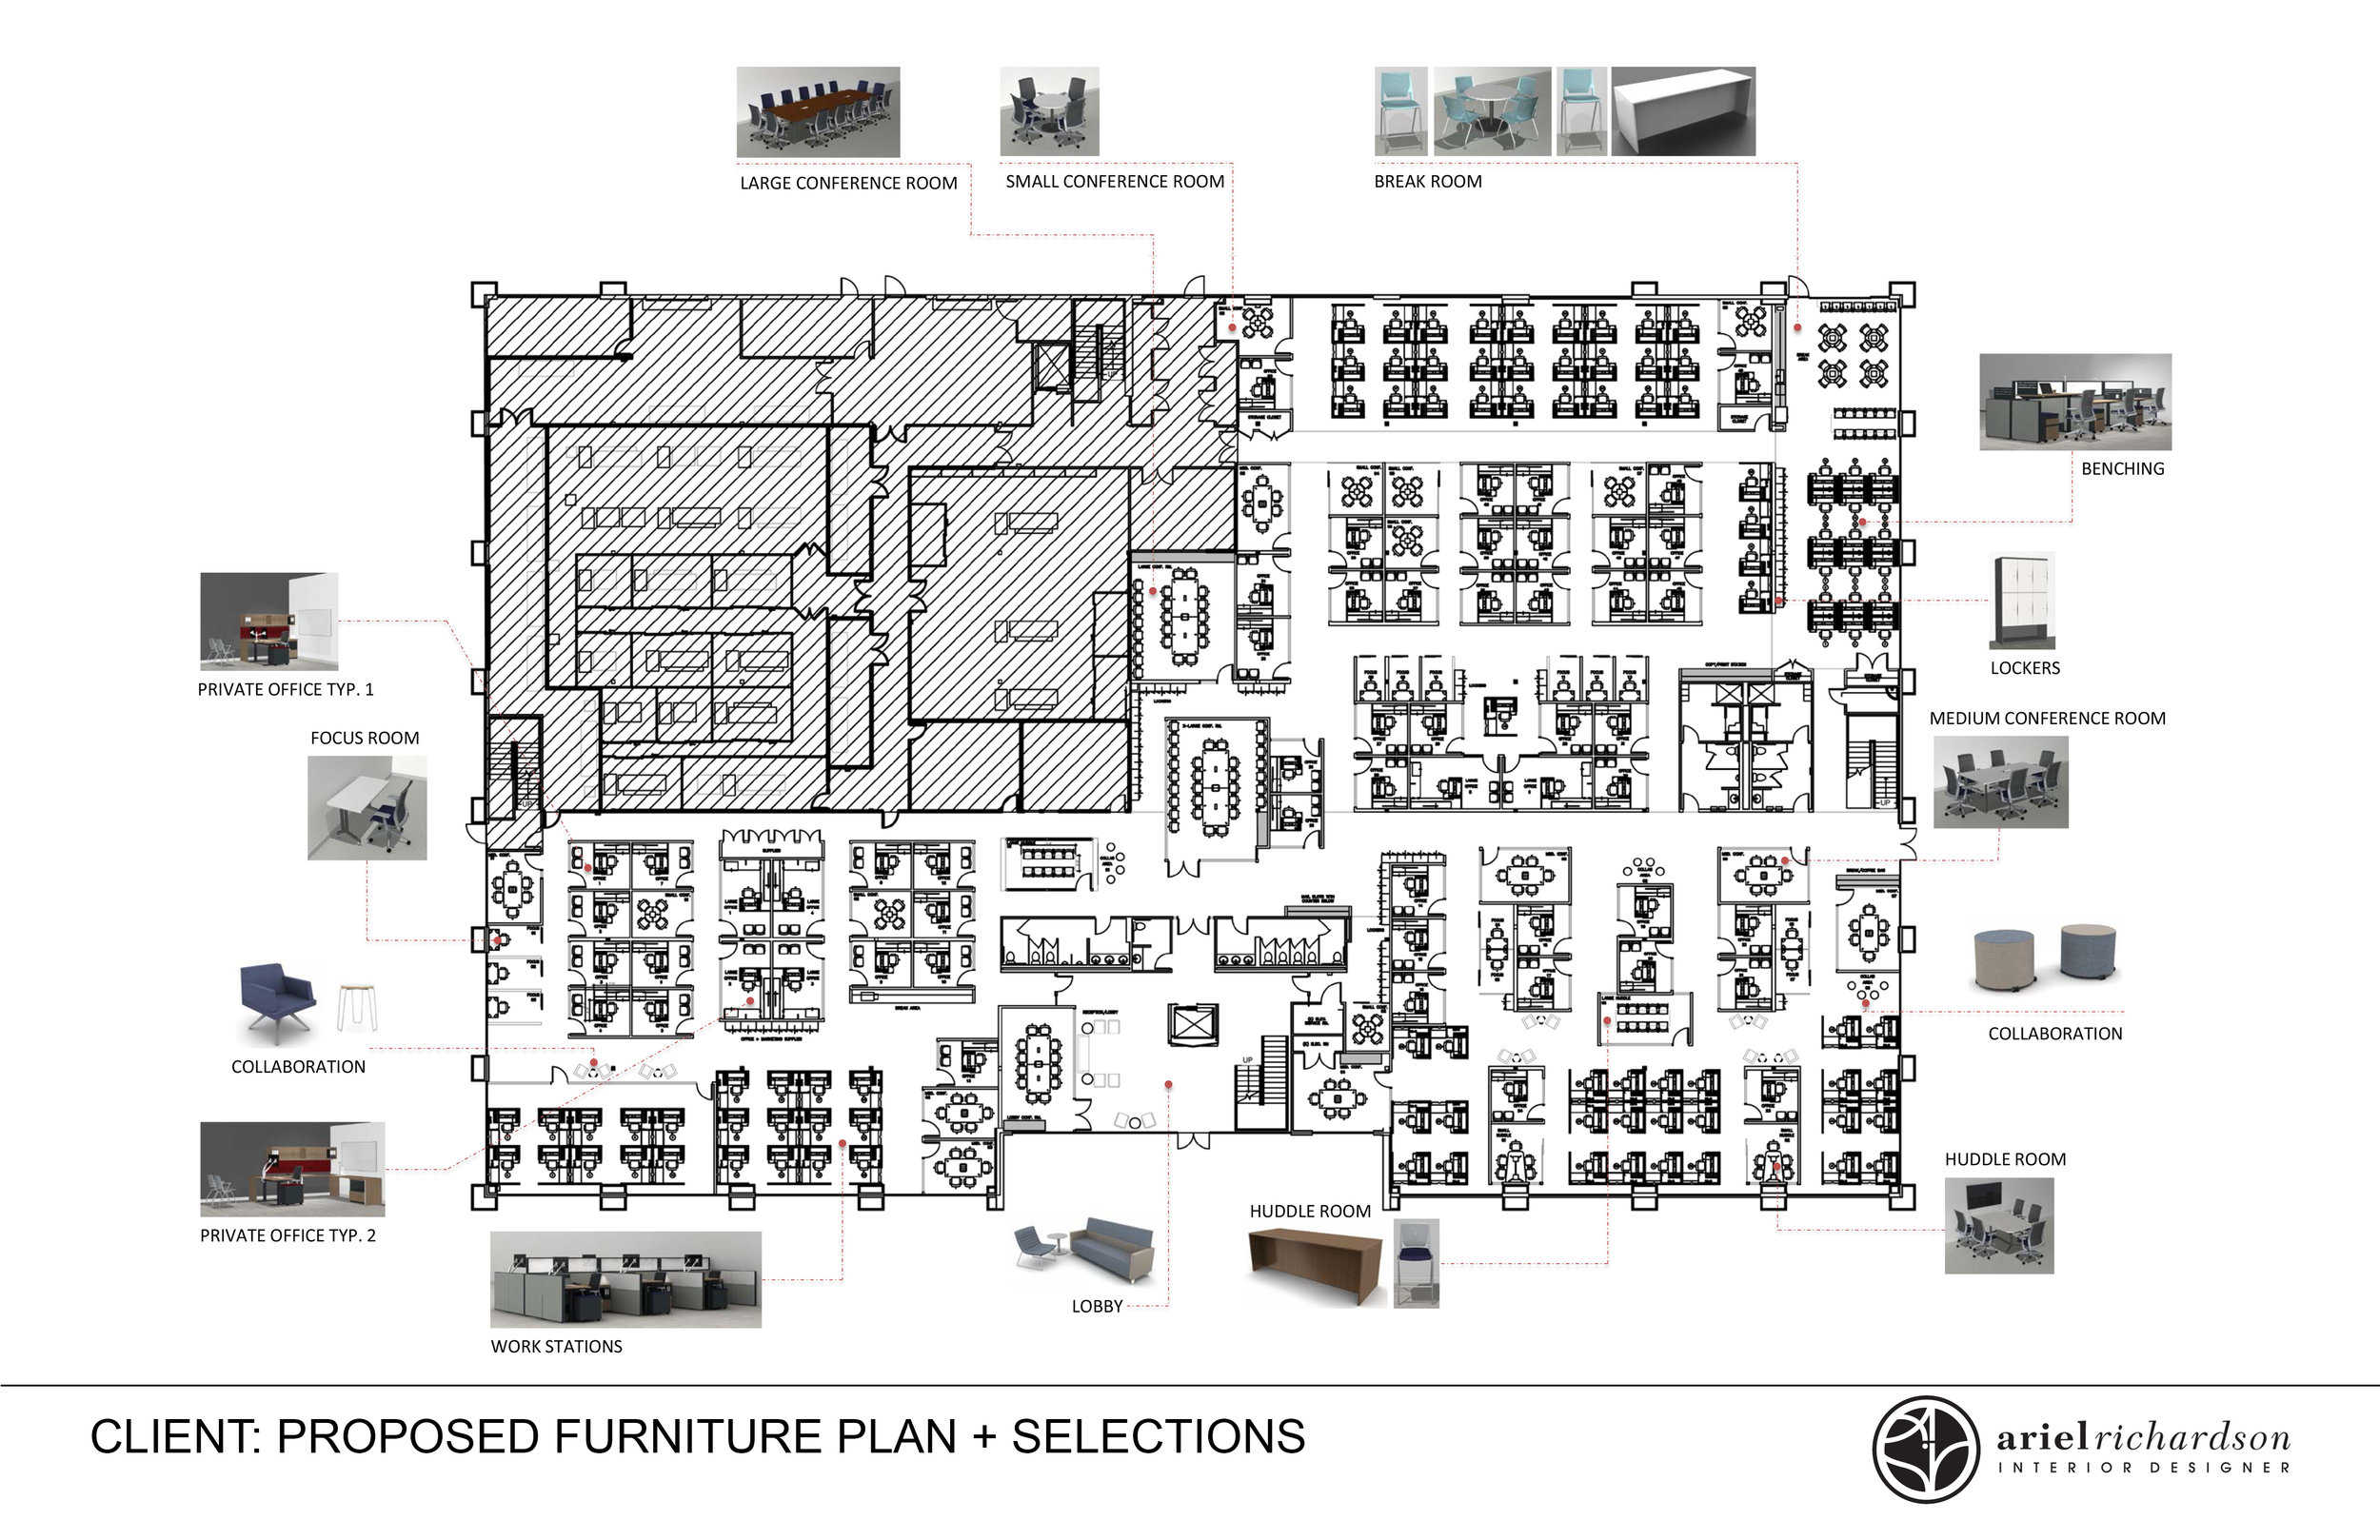 Client_Proposed Furniture + Space Plan.jpg